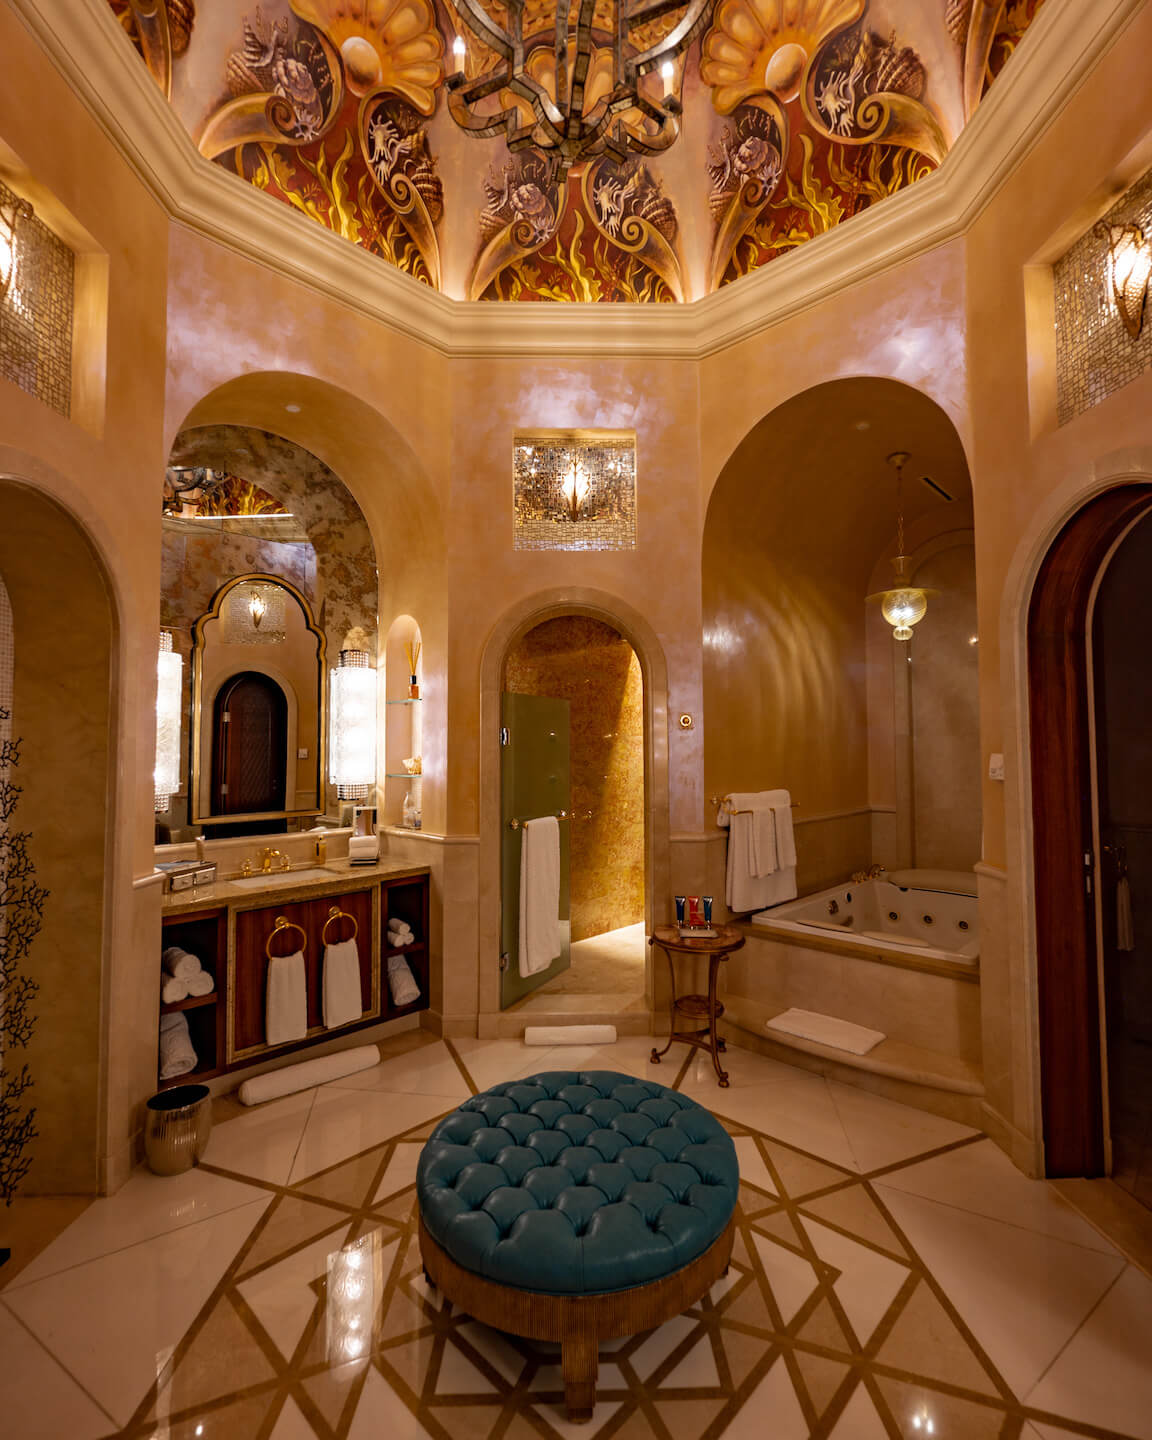 Luxurious Hammam Style bathroom with gold and marble in the royal bridge suite of the Atlantis The Palm Dubai